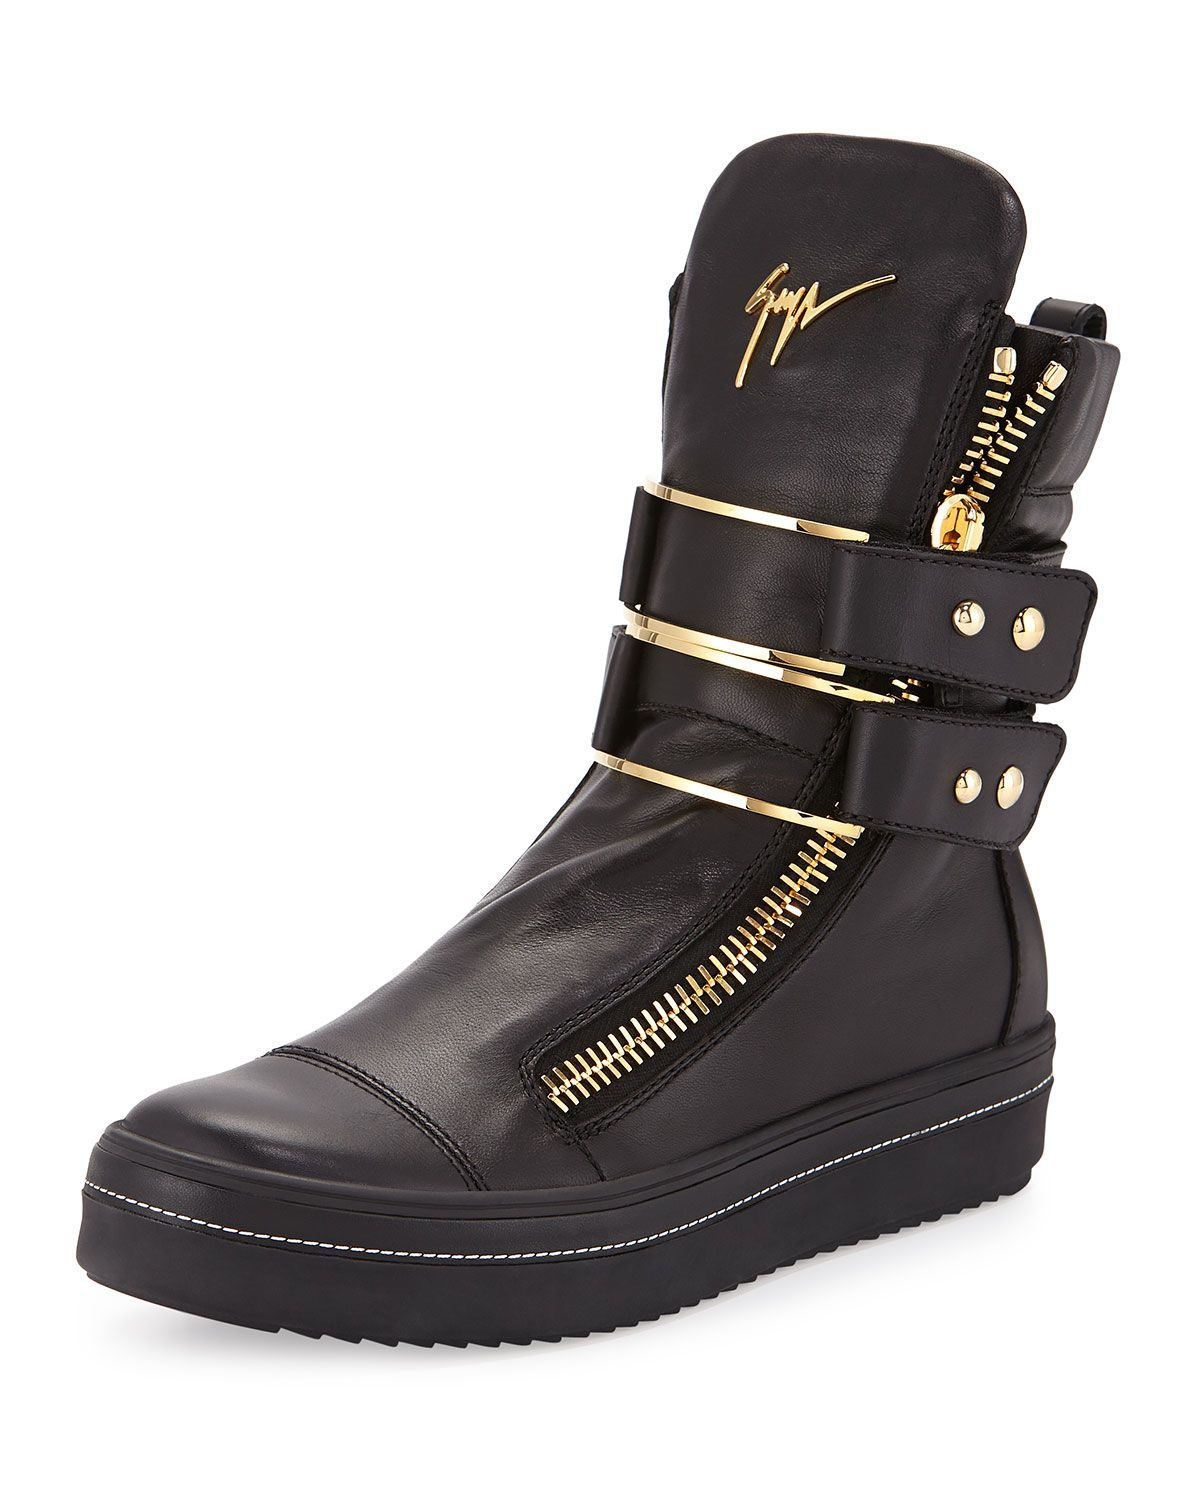 32f30377017f96 Giuseppe Zanotti Men s Leather High-Top Sneaker with Buckle